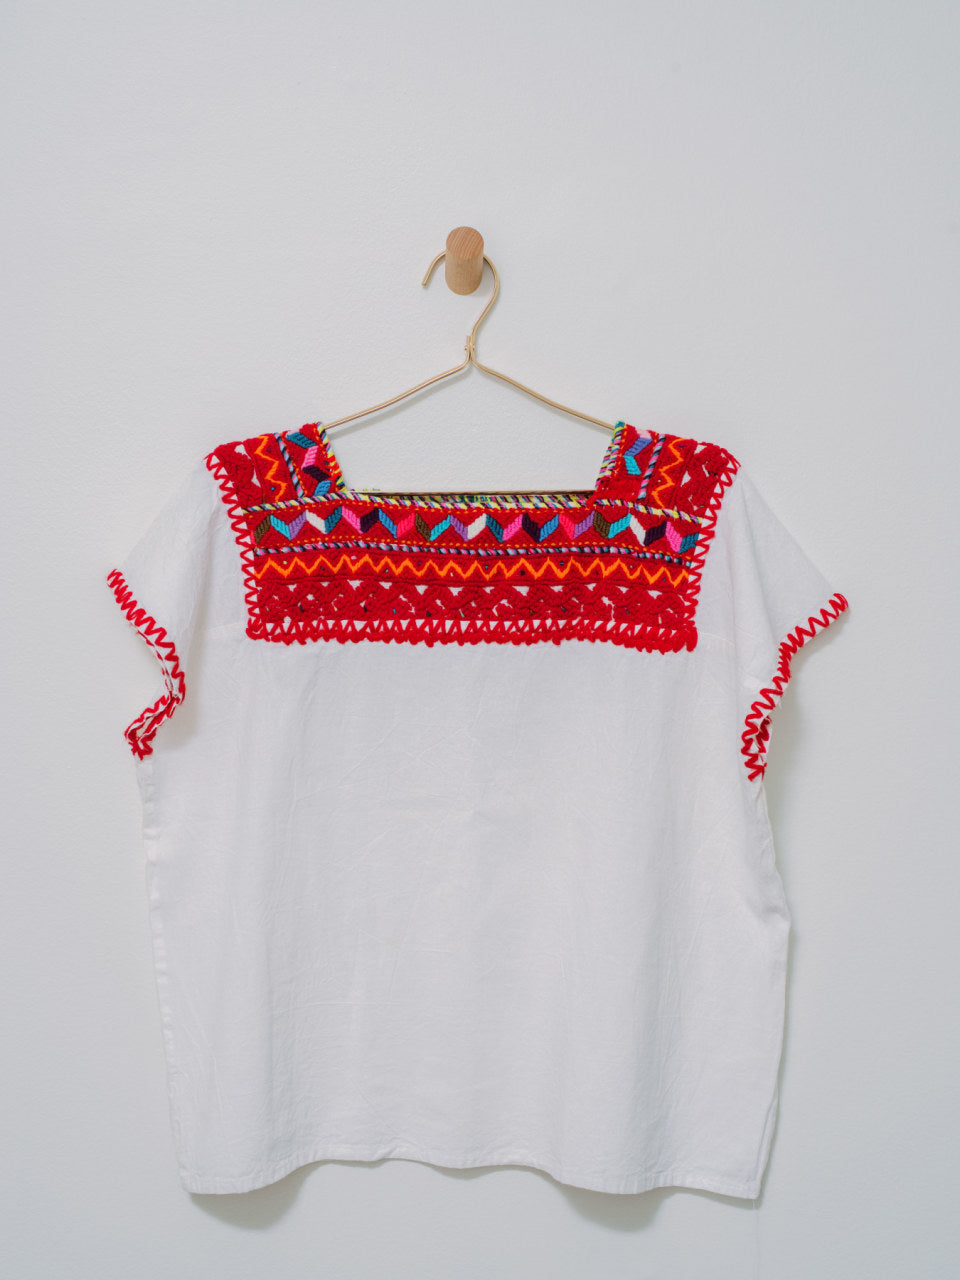 Corazon Top - Handmade, Embroidered Mexican Women Top - Chokolita